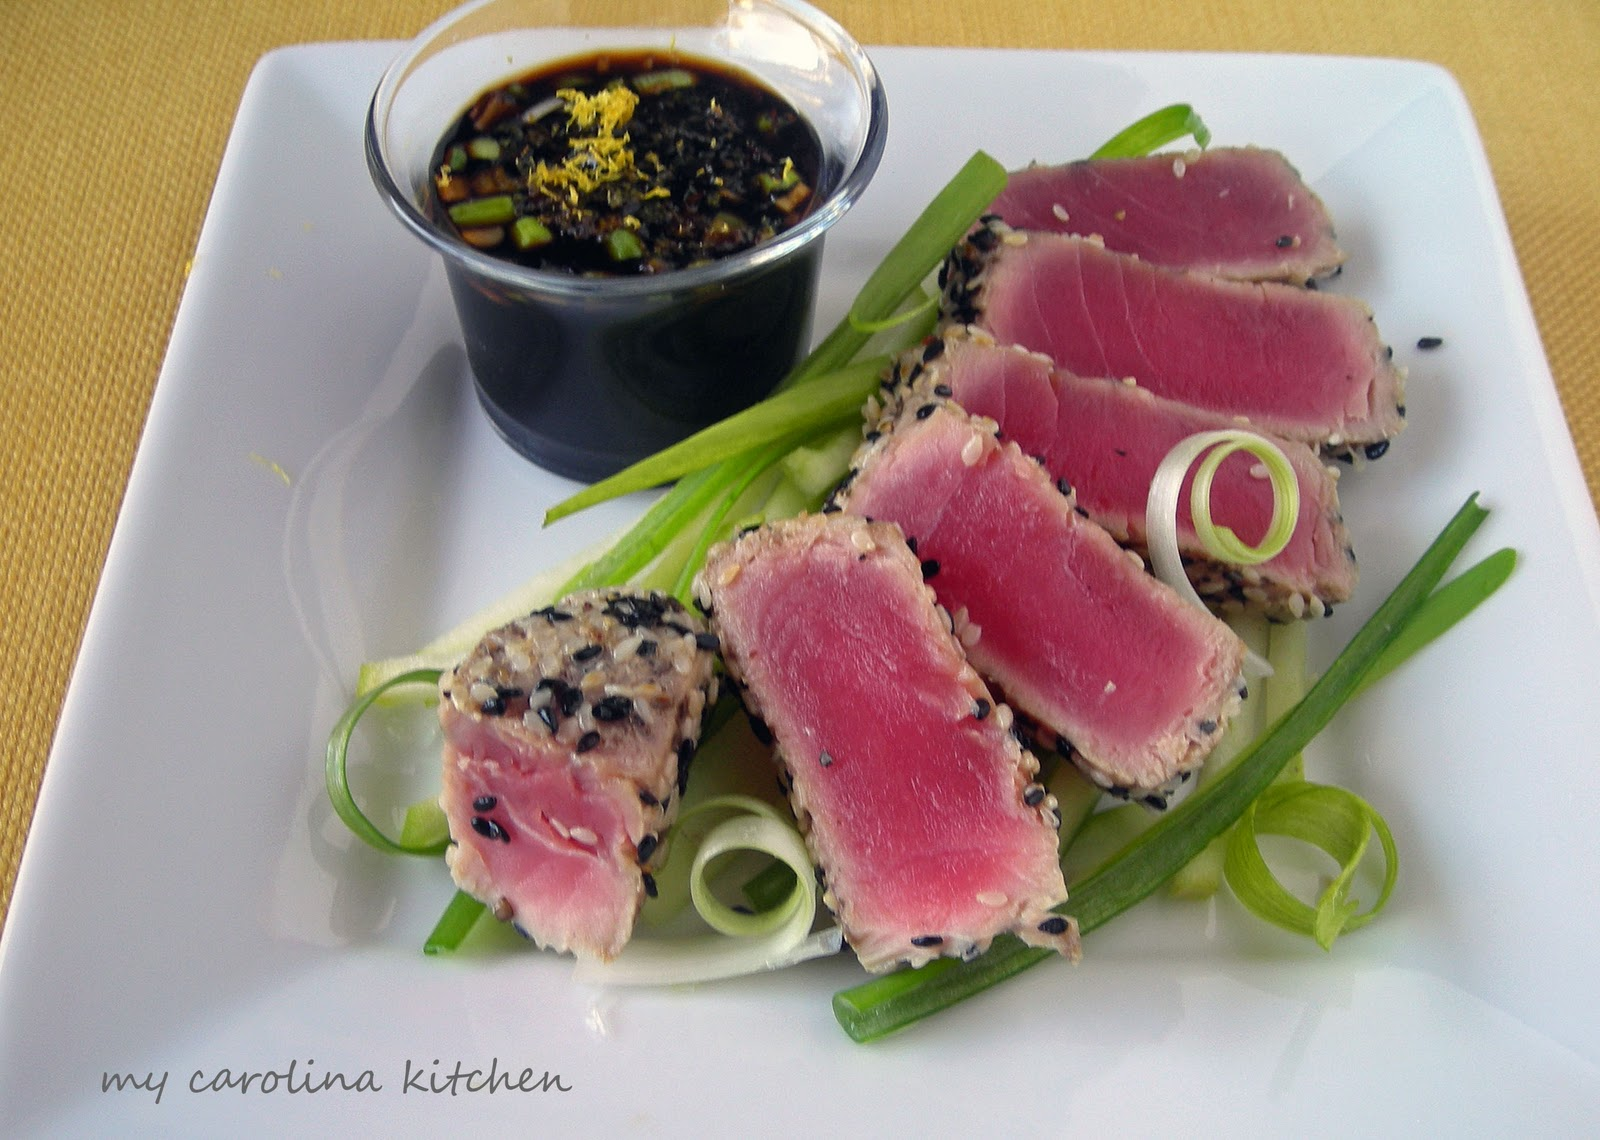 Seared Ahi Tuna Sauce Seared tuna with ponzu dipping